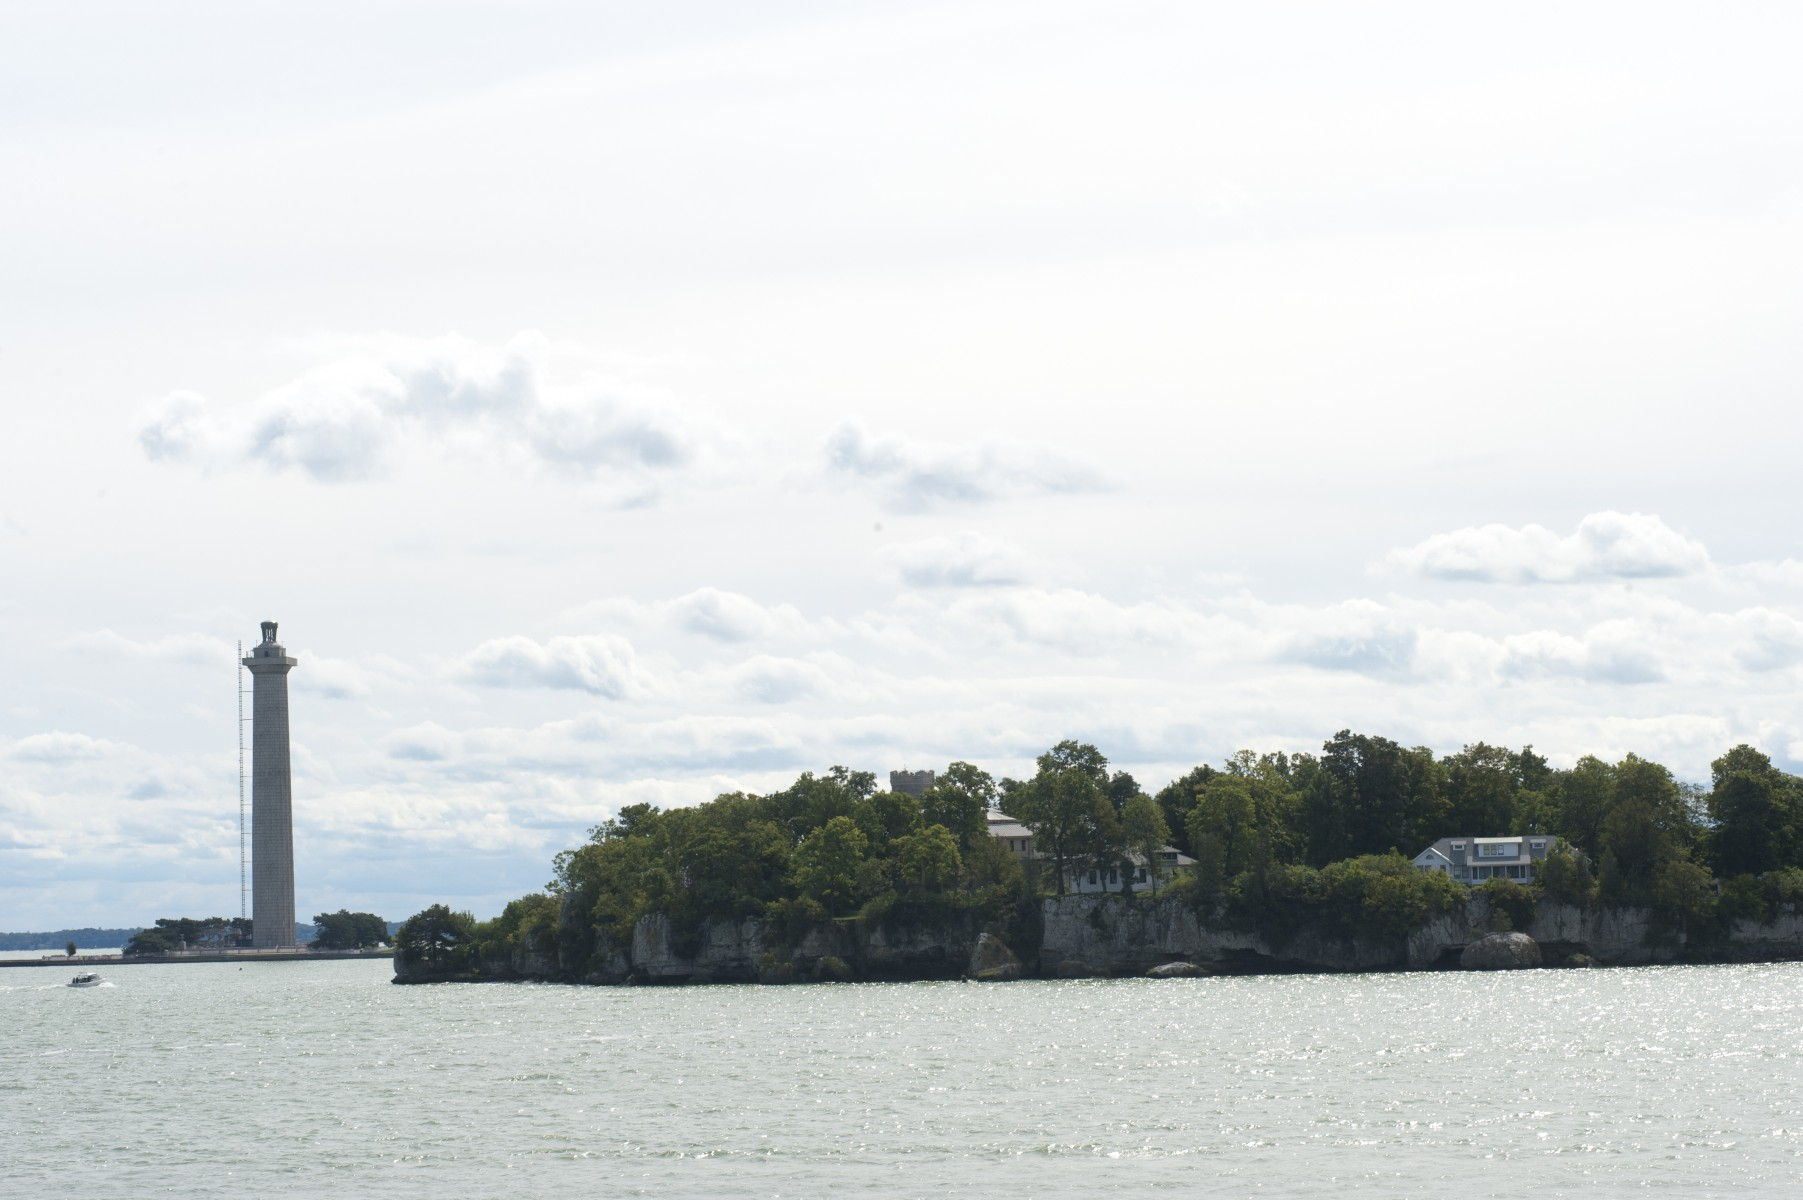 Stone Laboratory is Ohio Sea Grant's education and outreach facility on Lake Erie.